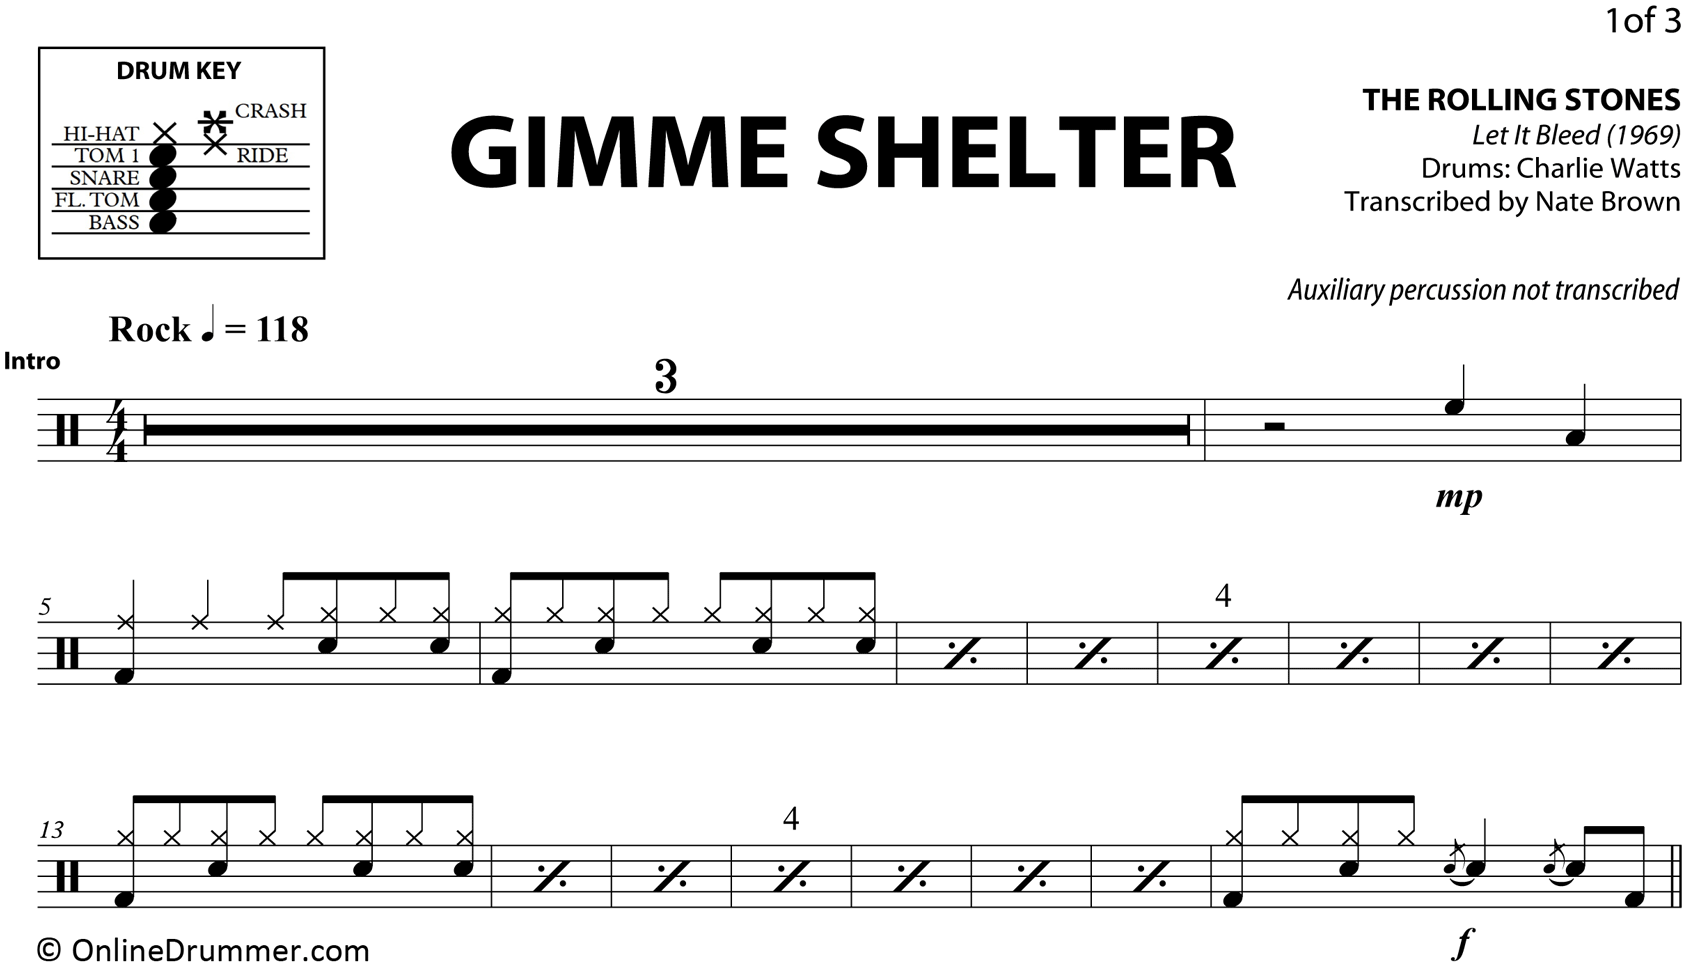 Gimme Shelter - The Rolling Stones - Drum Sheet Music